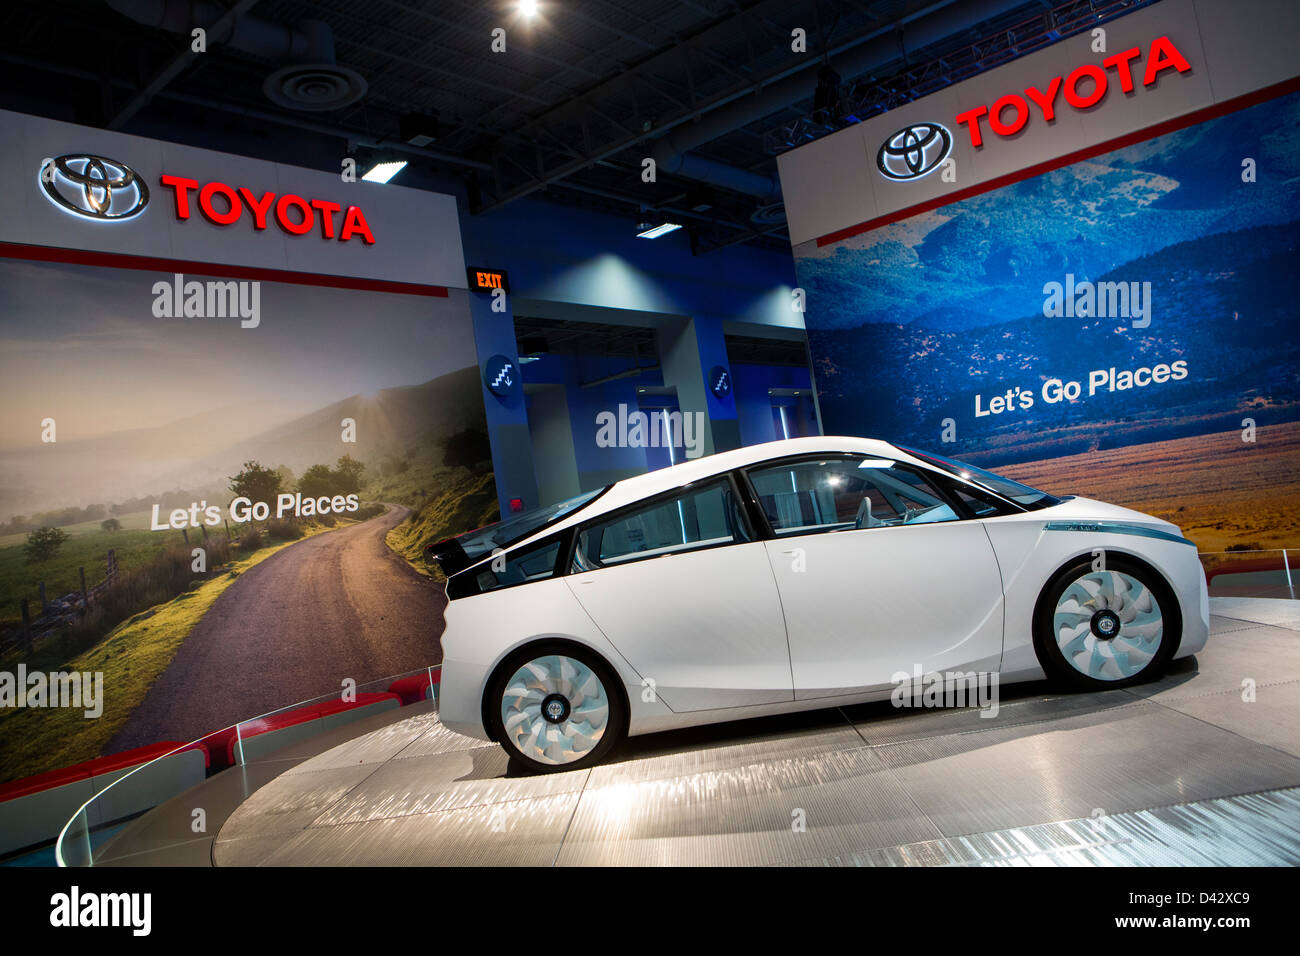 A Toyota FT-Bh Hybrid Concept Car on display at the 2013 Washington, DC Auto Show. - Stock Image